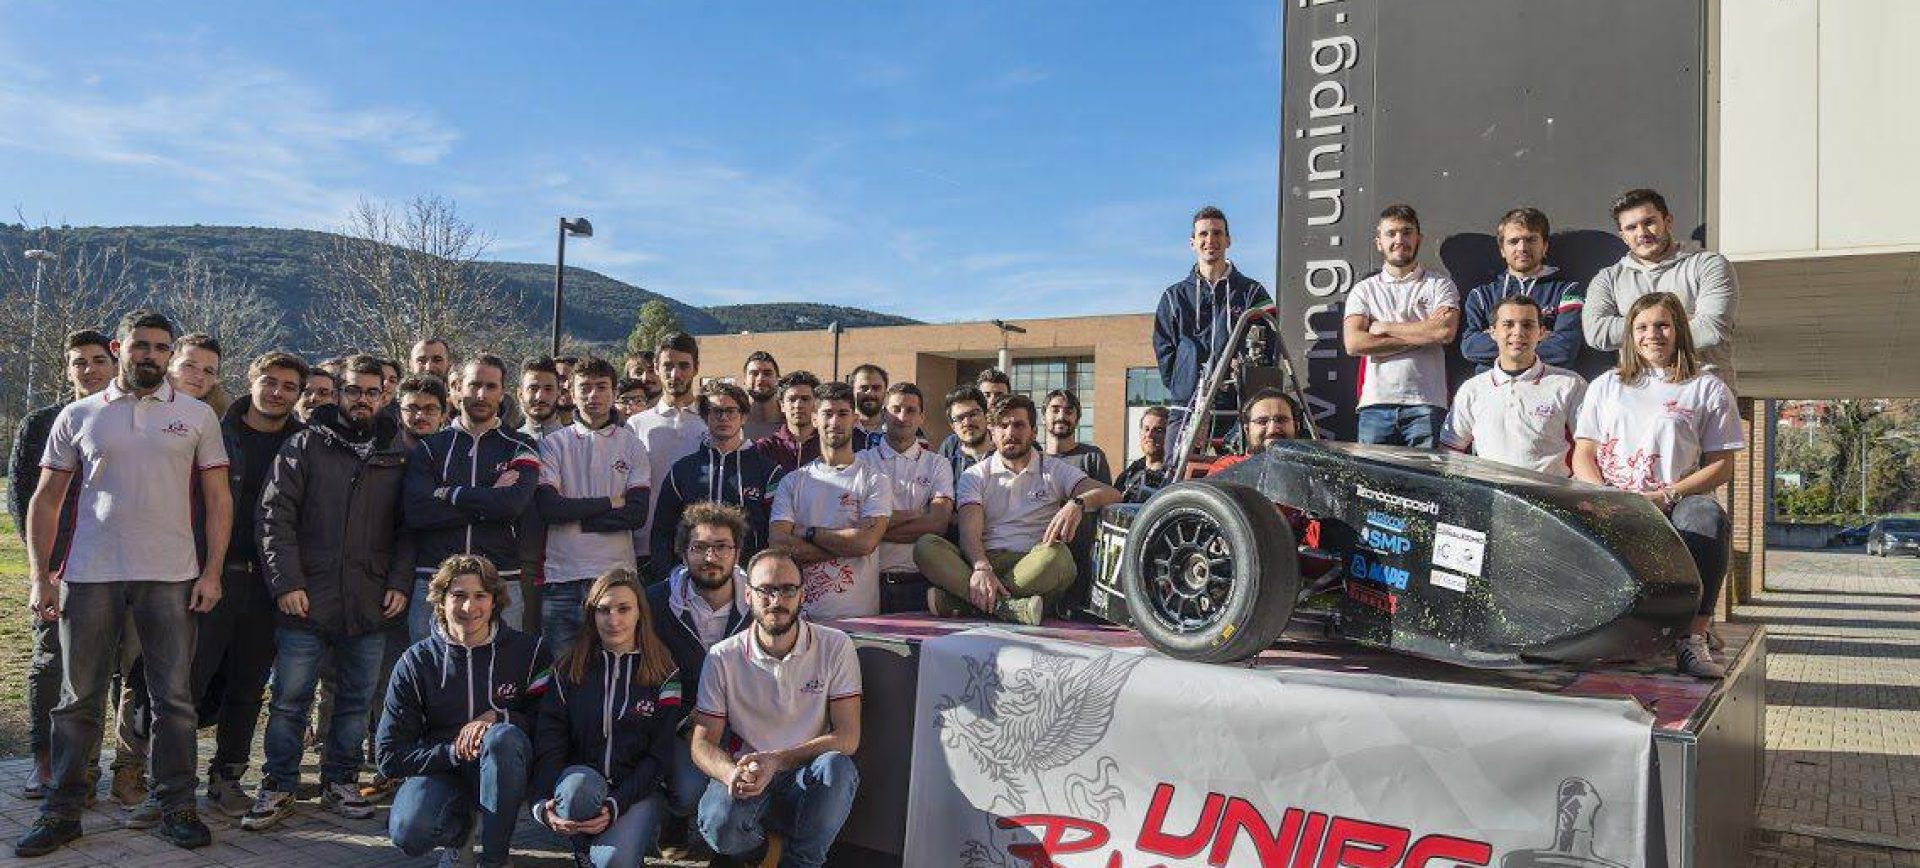 UniPG Racing Team